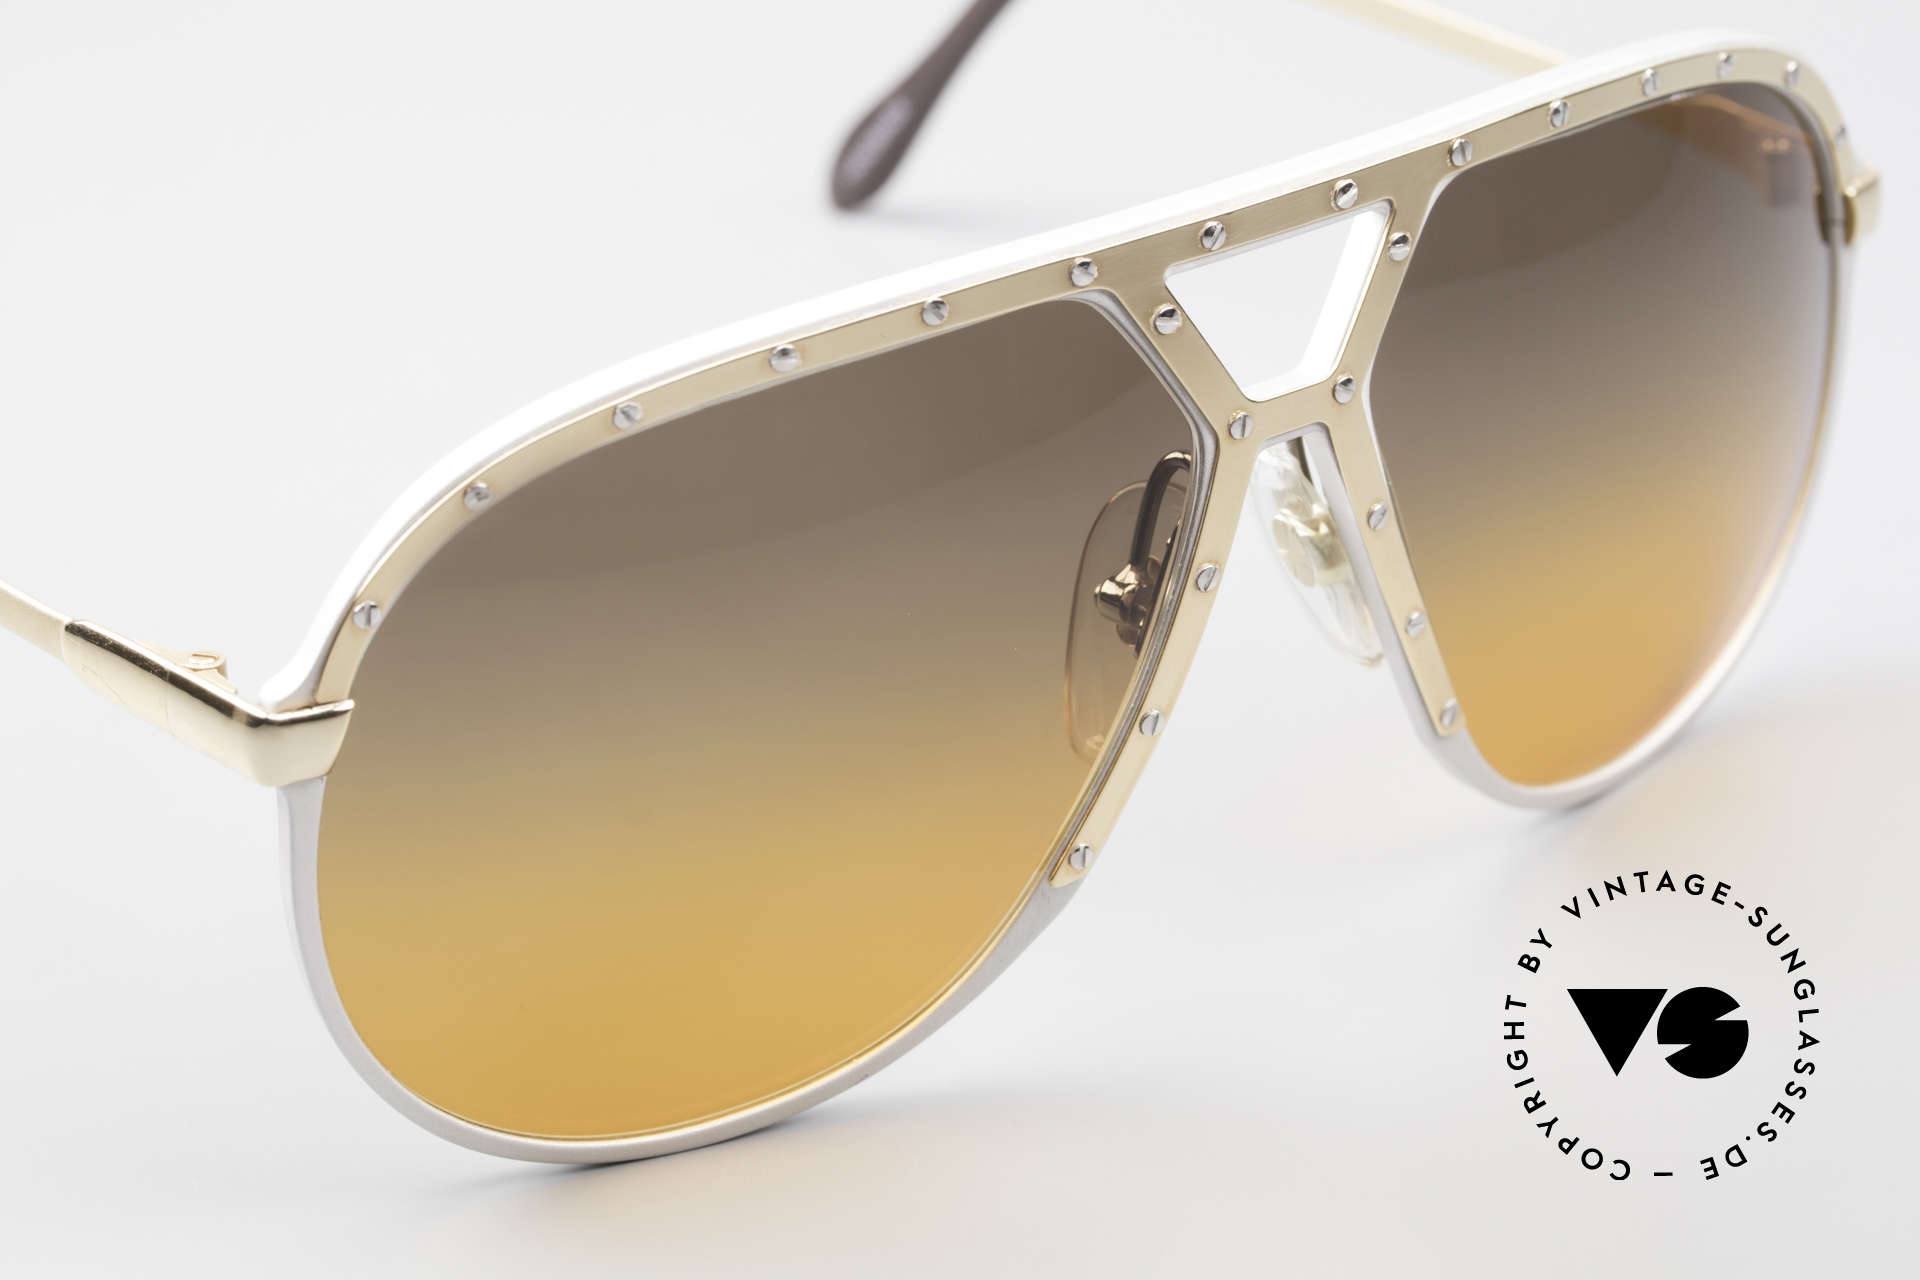 Alpina M1 80's Sunglasses One Of A Kind, unworn collector's item comes with a Porsche case, Made for Men